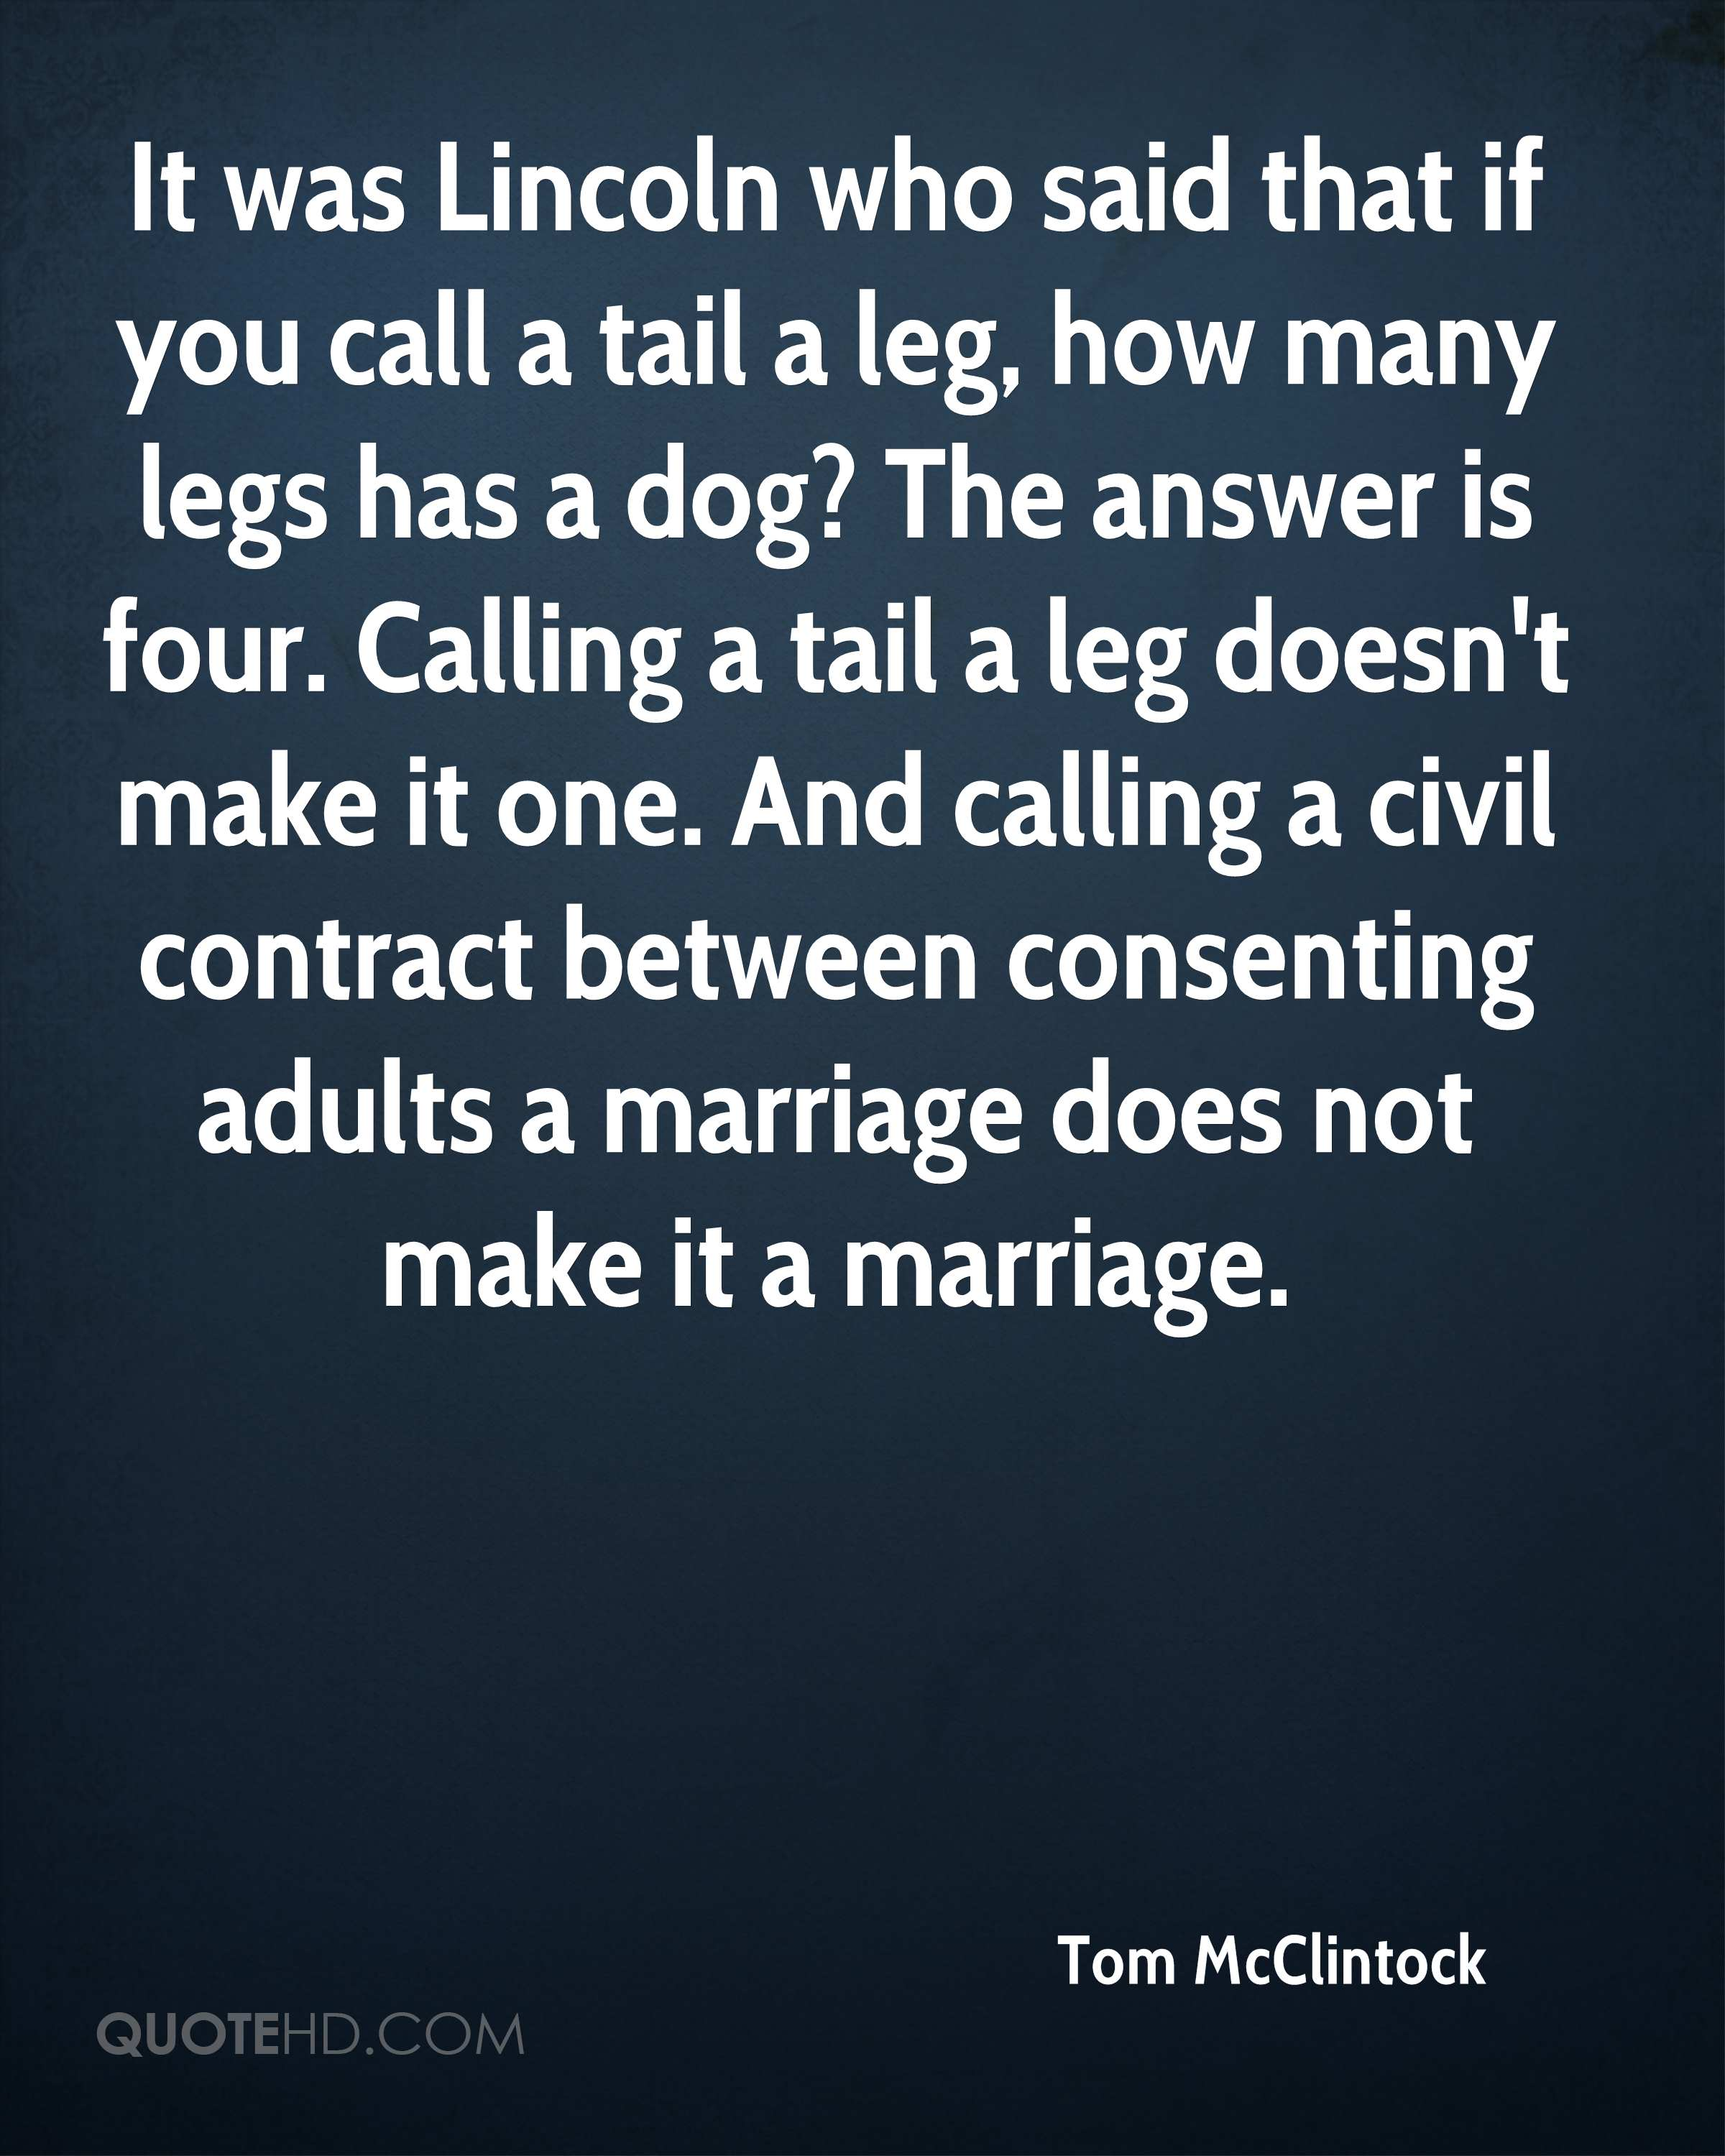 It was Lincoln who said that if you call a tail a leg, how many legs has a dog? The answer is four. Calling a tail a leg doesn't make it one. And calling a civil contract between consenting adults a marriage does not make it a marriage.